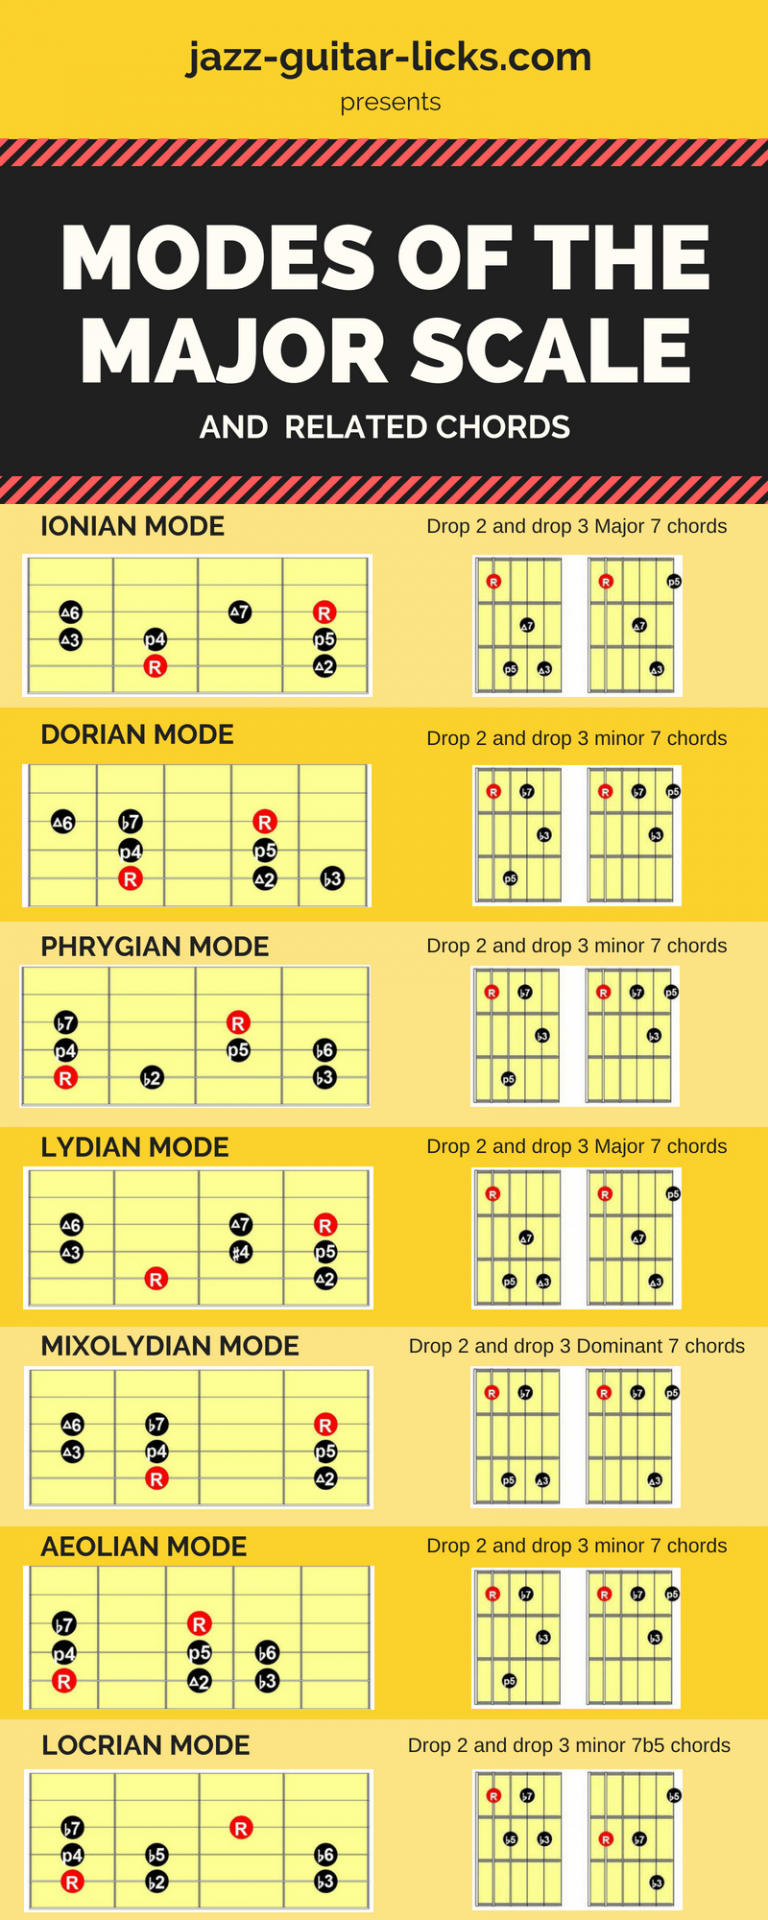 Modes of the major scale and chords for guitar